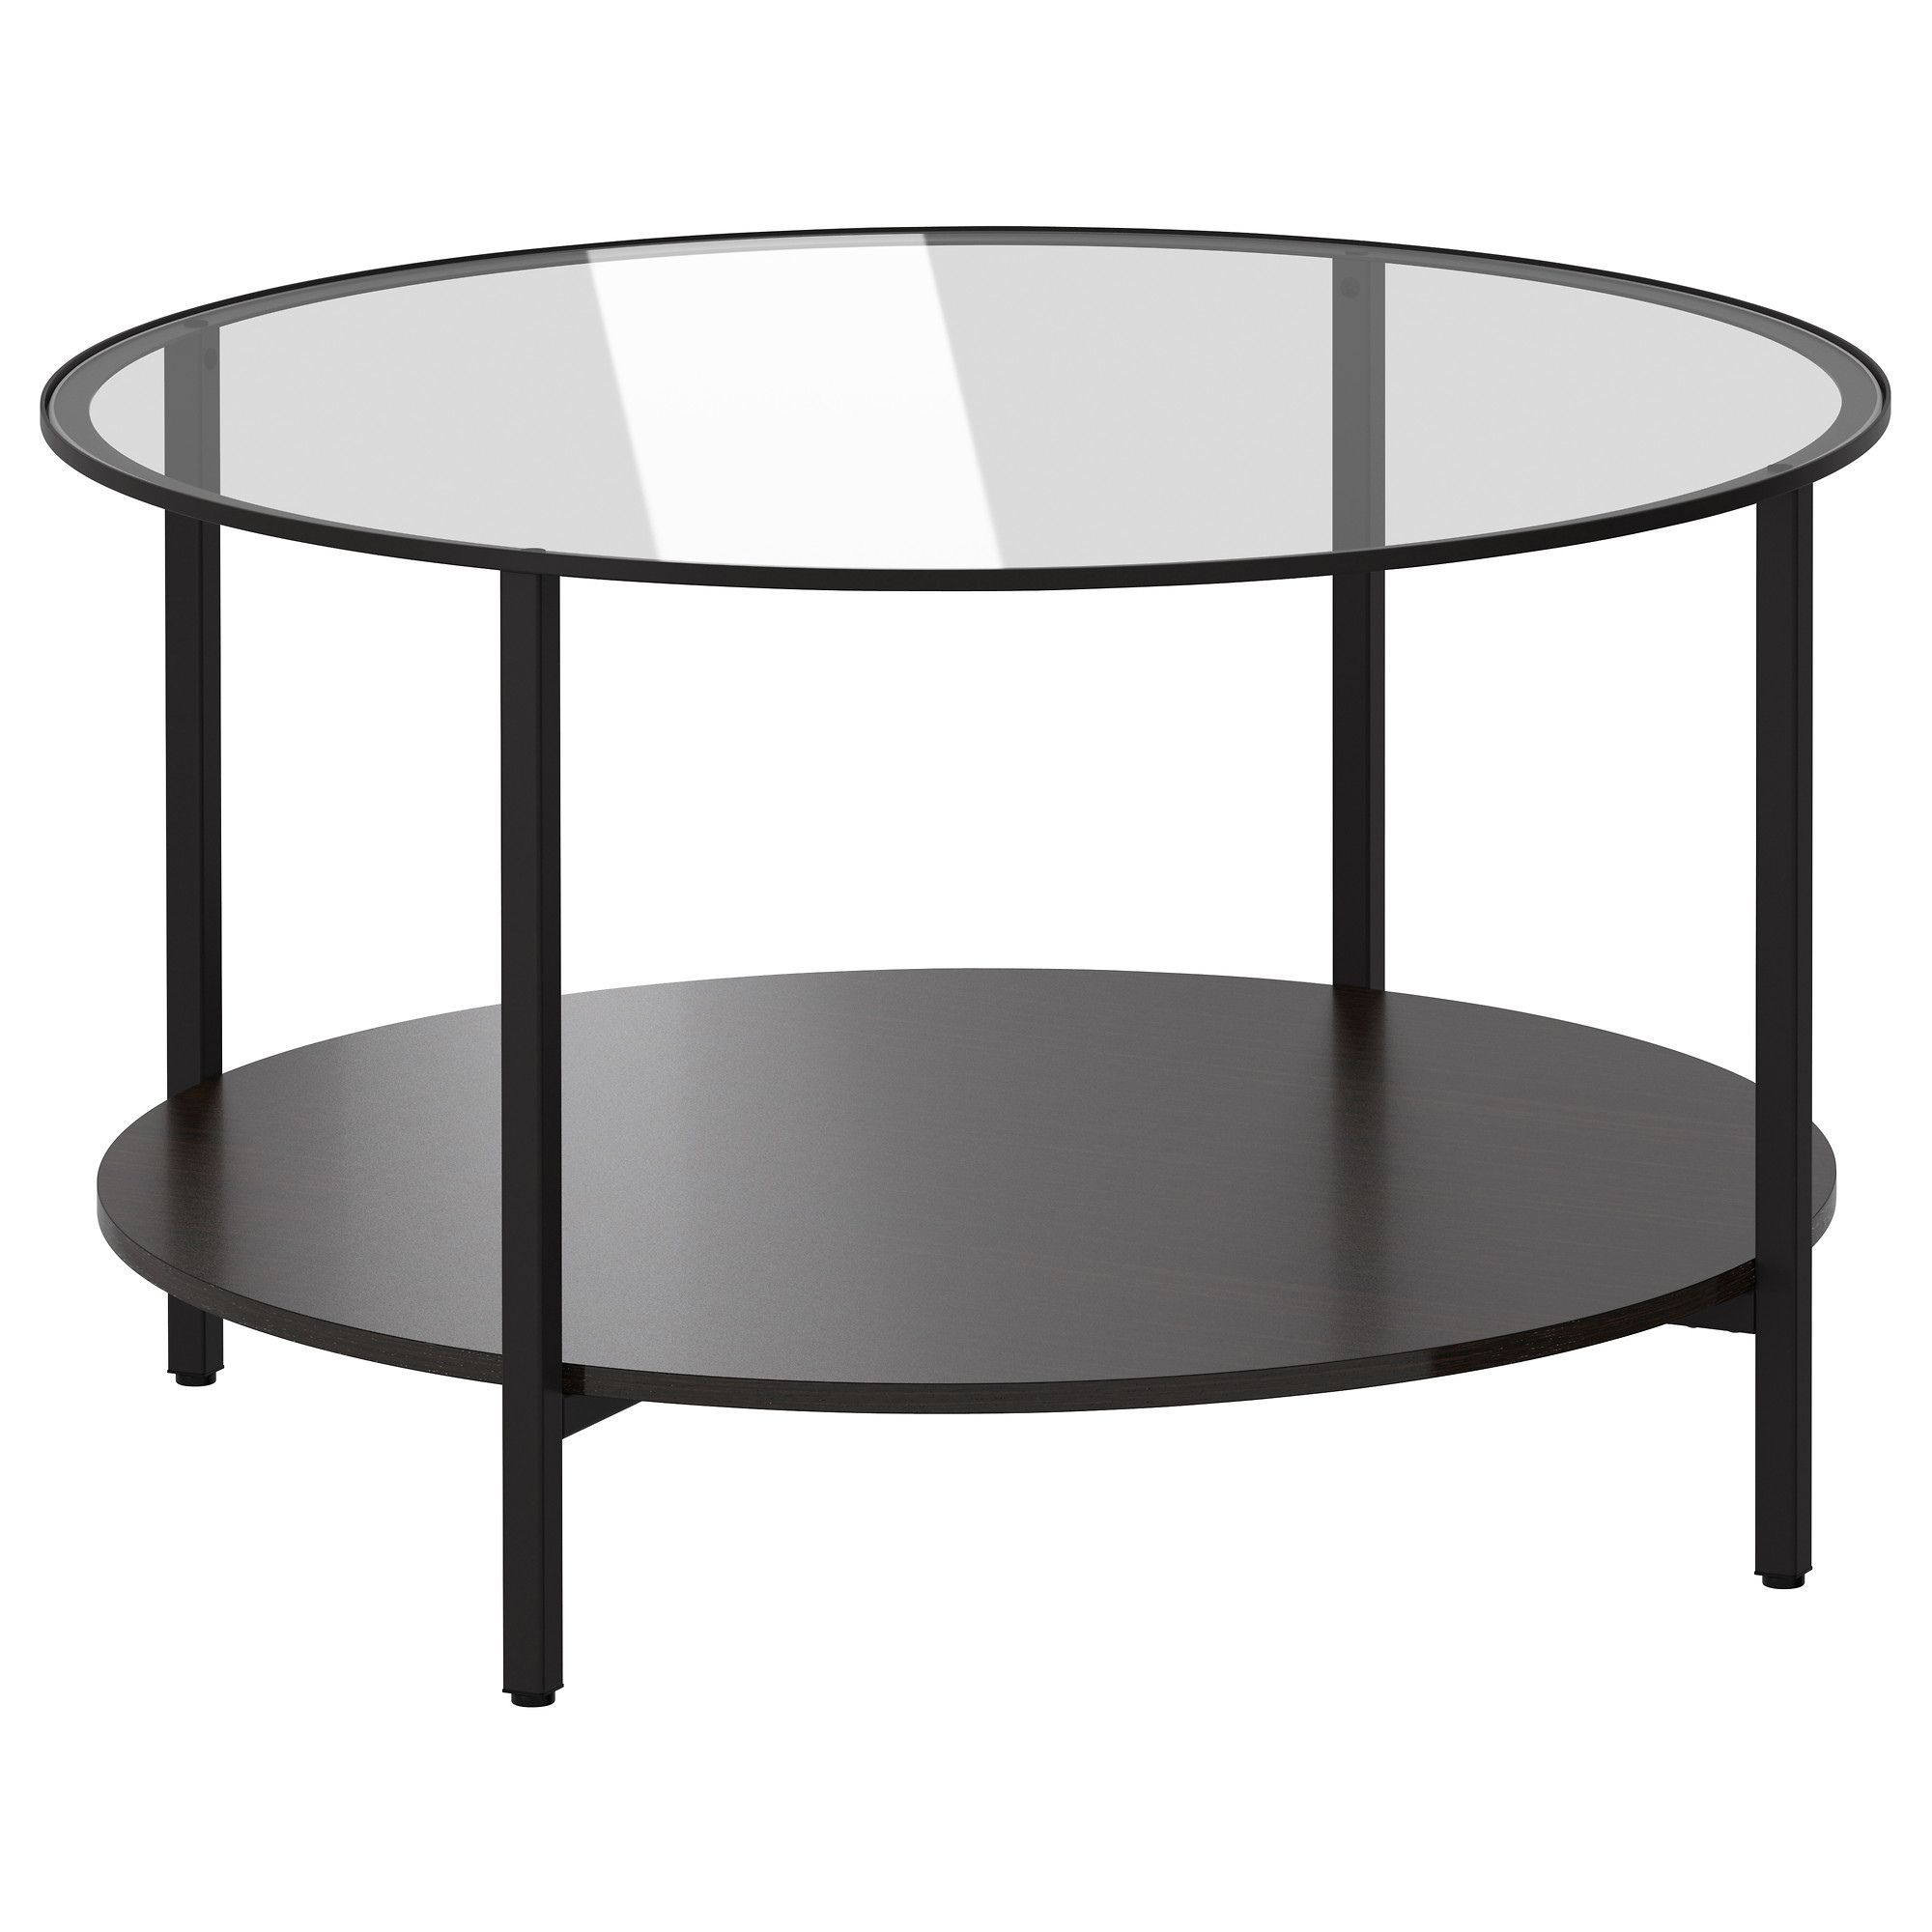 Small Round Coffee Table Ikea Living Room Table Set Check More At Http Www Buzzfolders Com Small Round Coffee Tab Ikea Couchtisch Couchtisch Ikea Glastisch